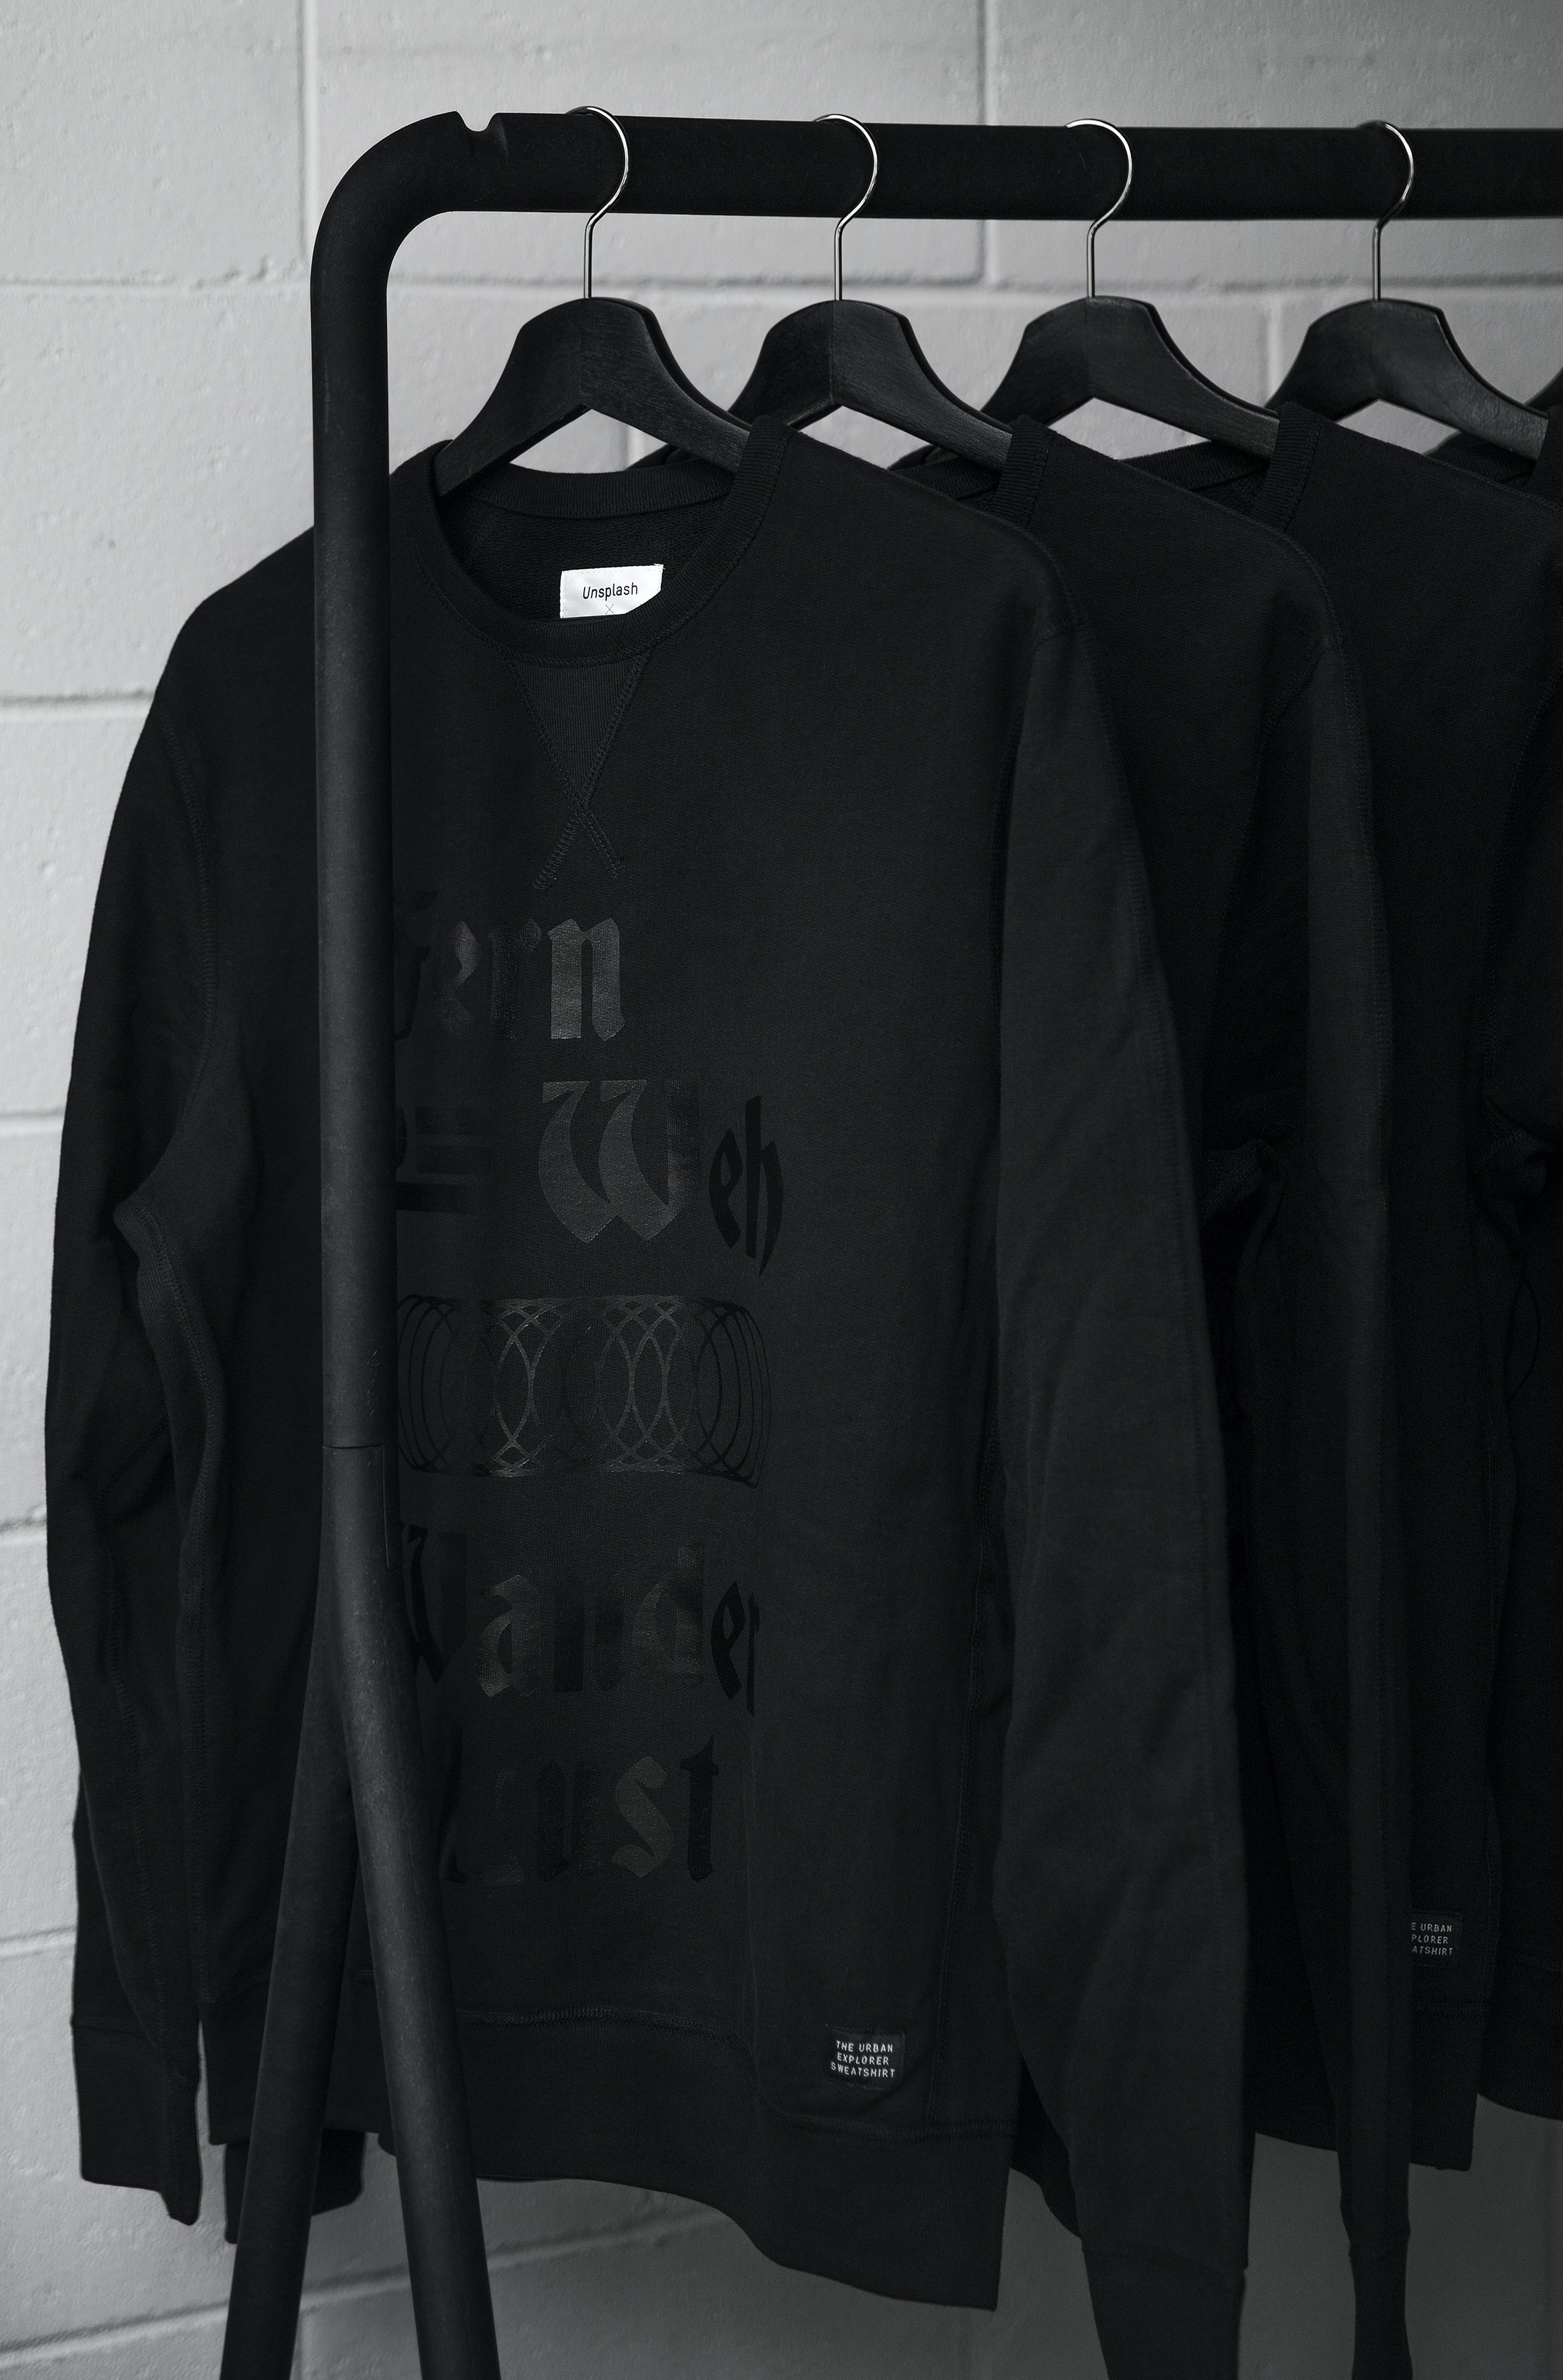 Black sweatshirts hang from black hangs on a rack against a white brick wall